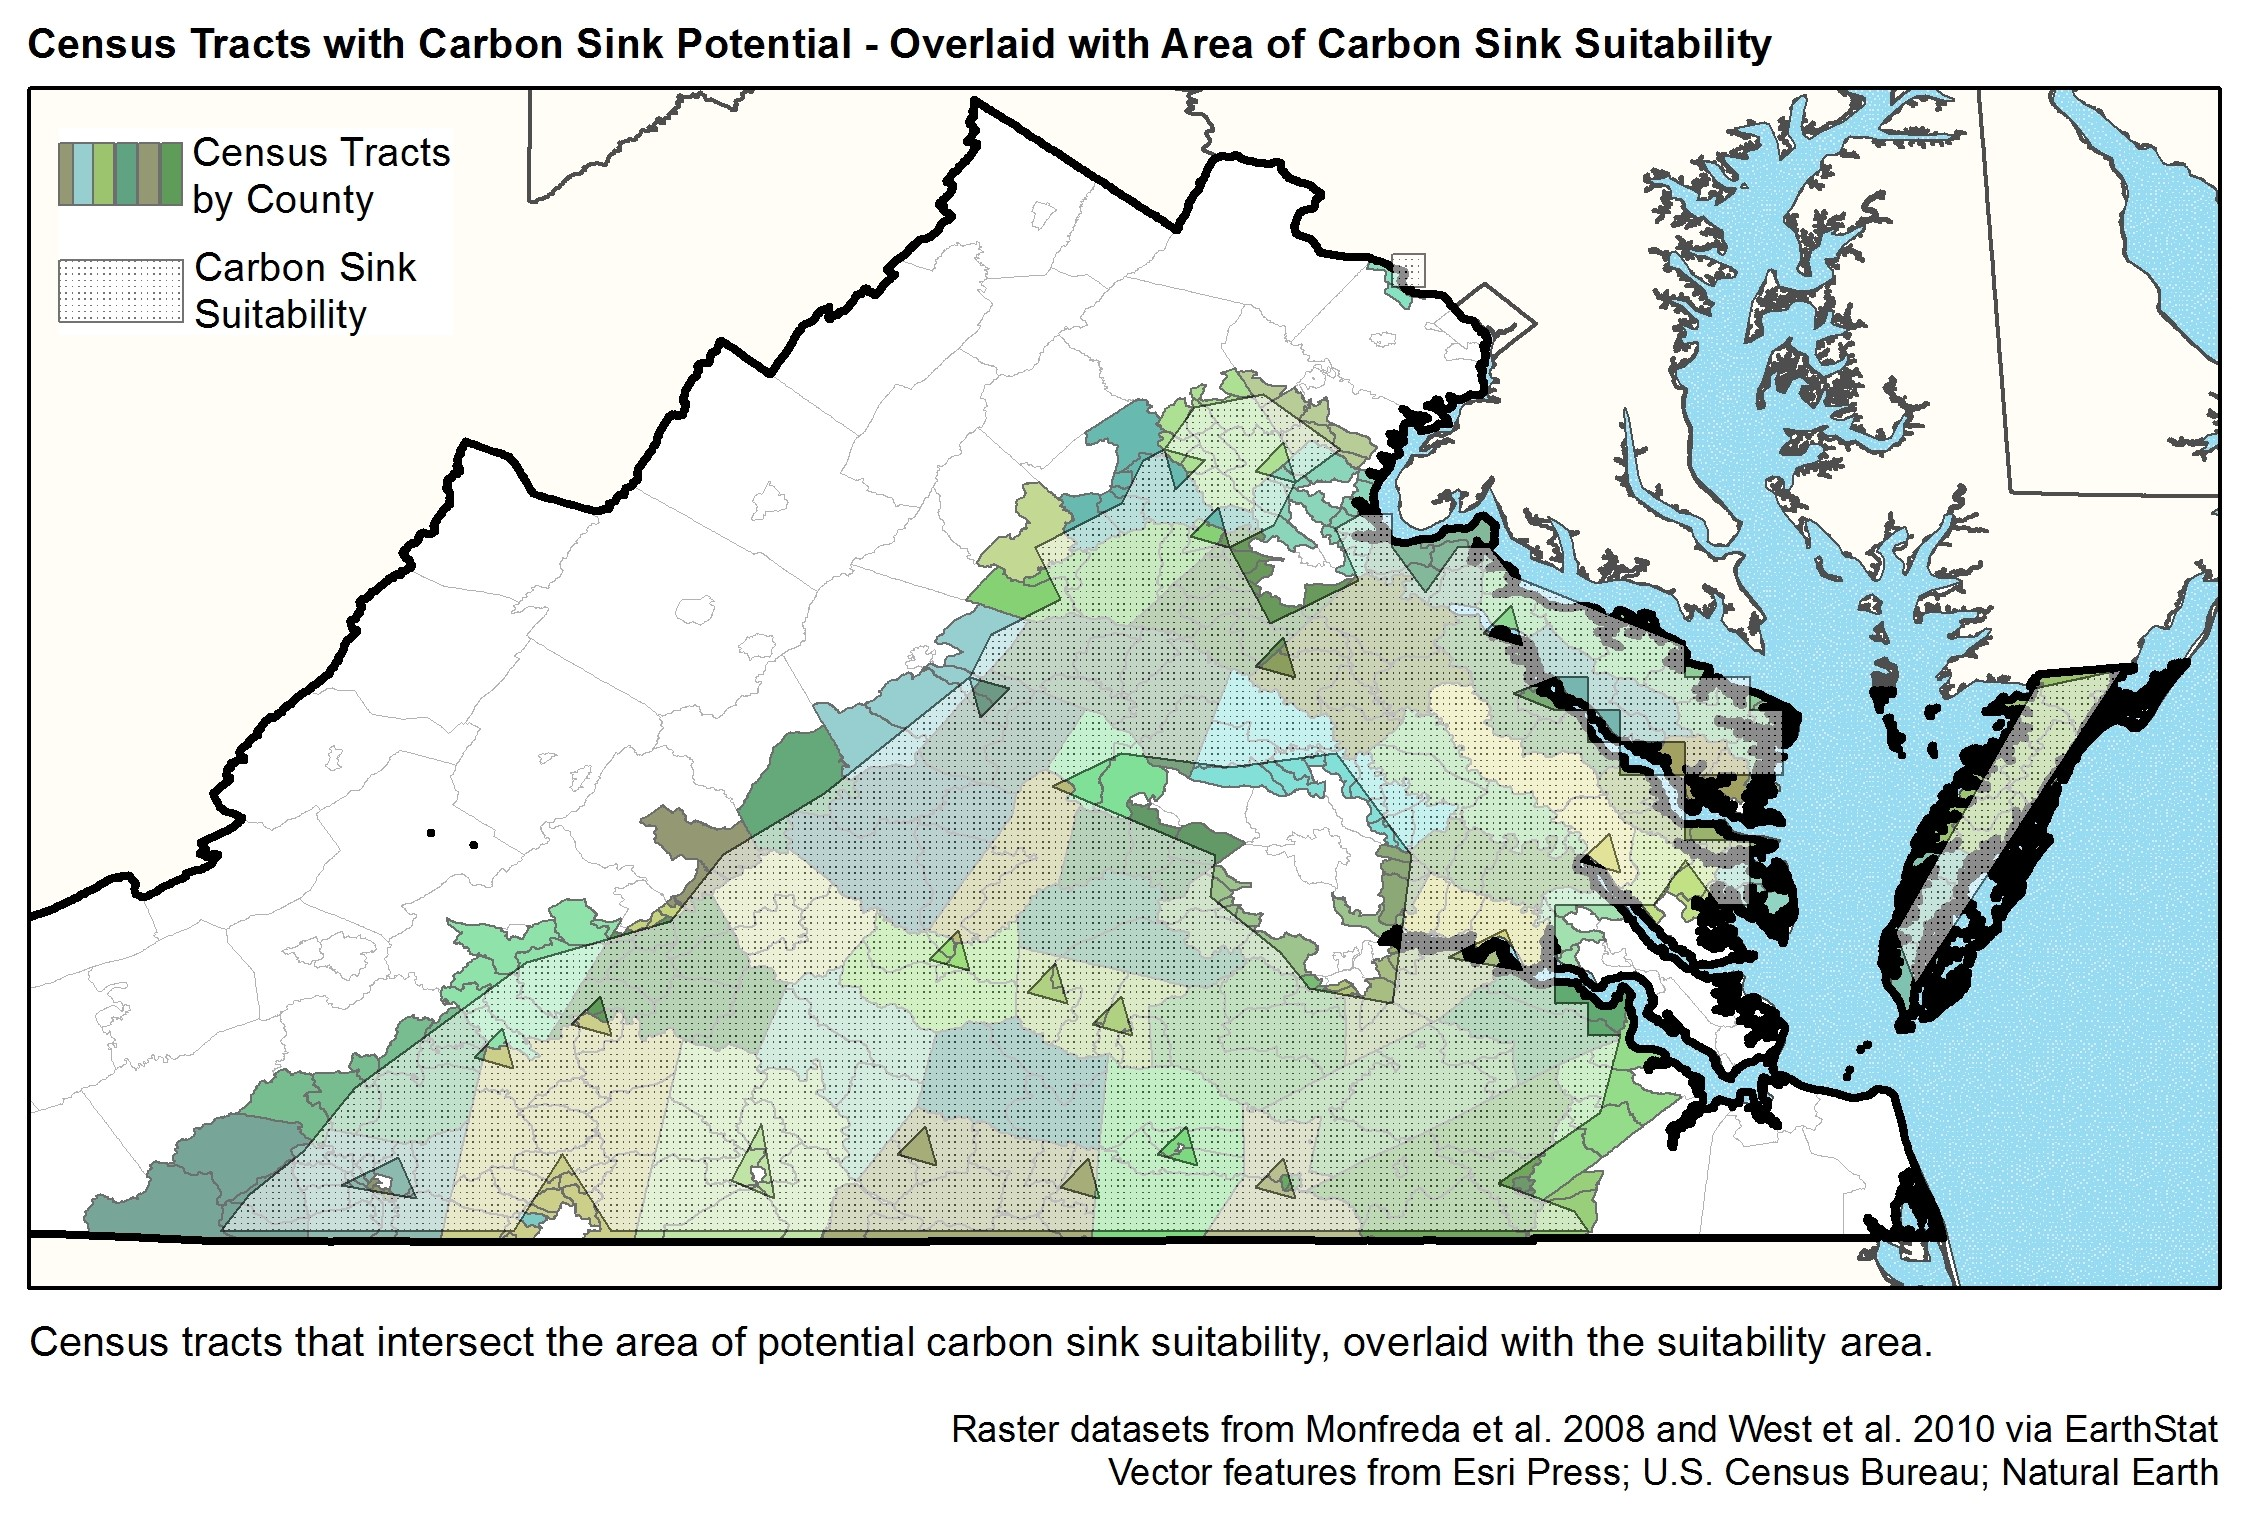 PROJECT 2 Overlaid CarbonSink CensusTracts.jpg